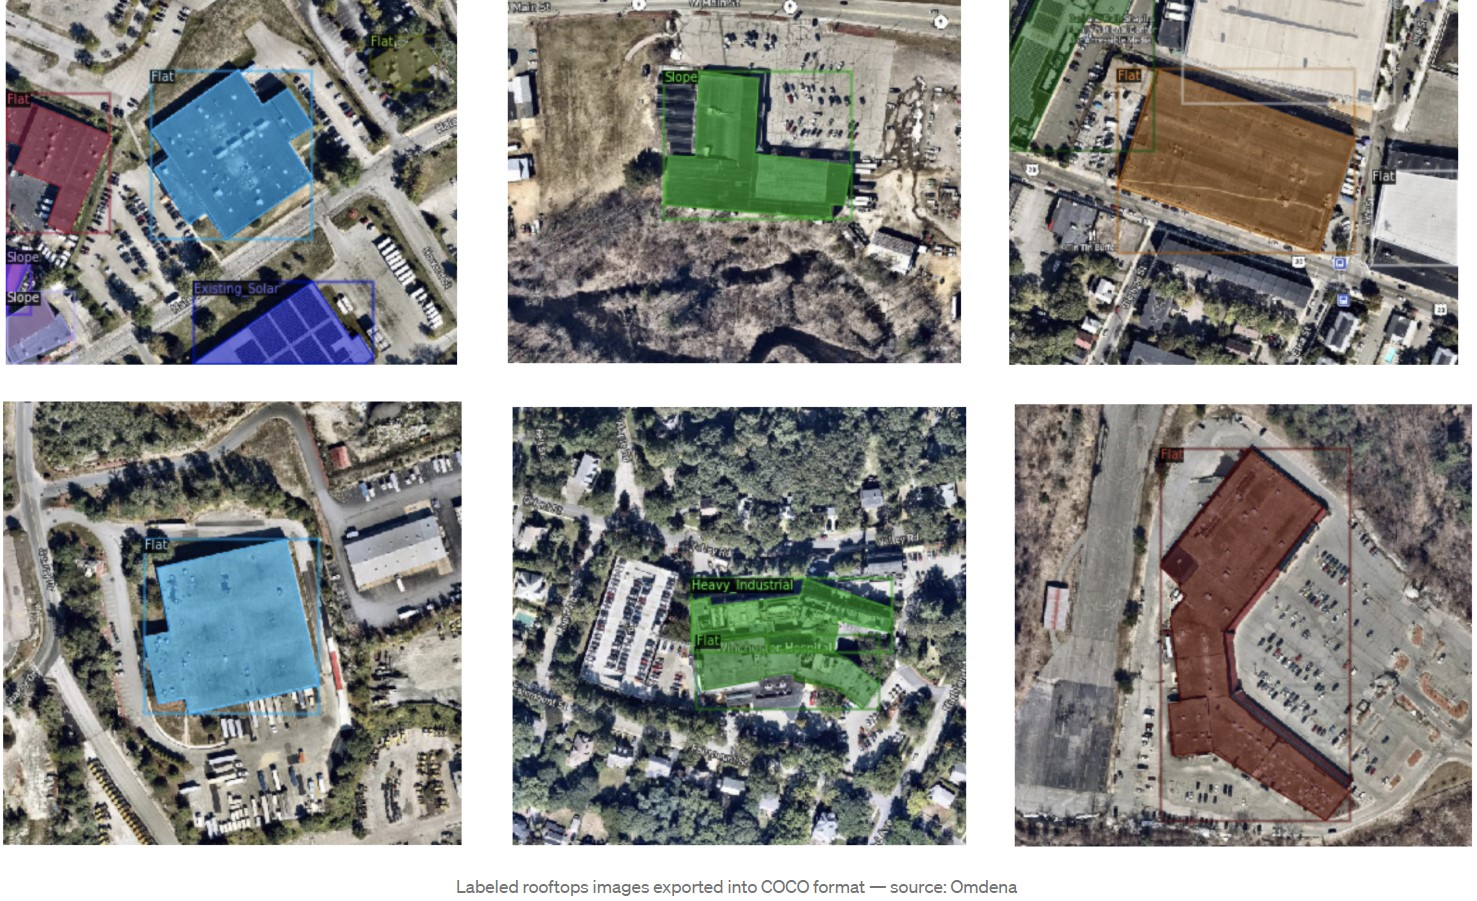 Labeled rooftops images exported into COCO format — source: Omdena